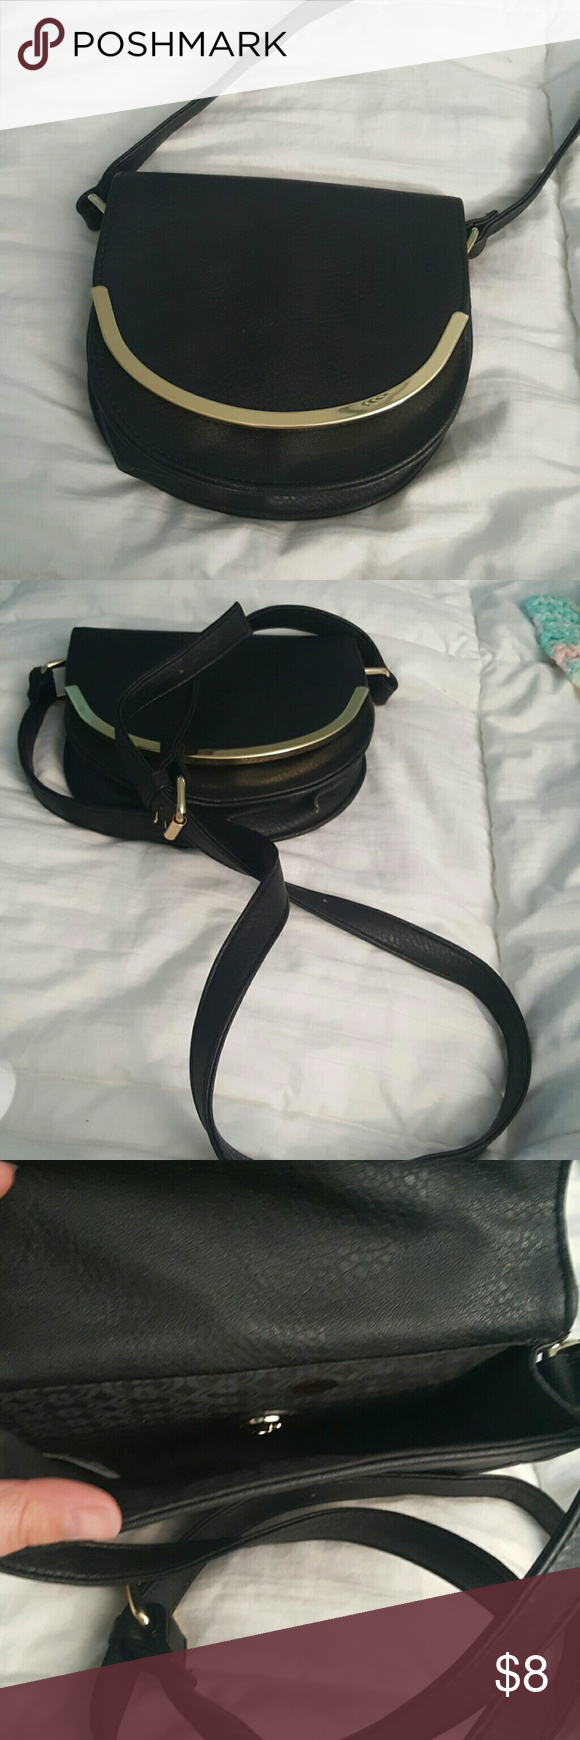 Black crossbody Like new Charming Charlie Bags Crossbody Bags